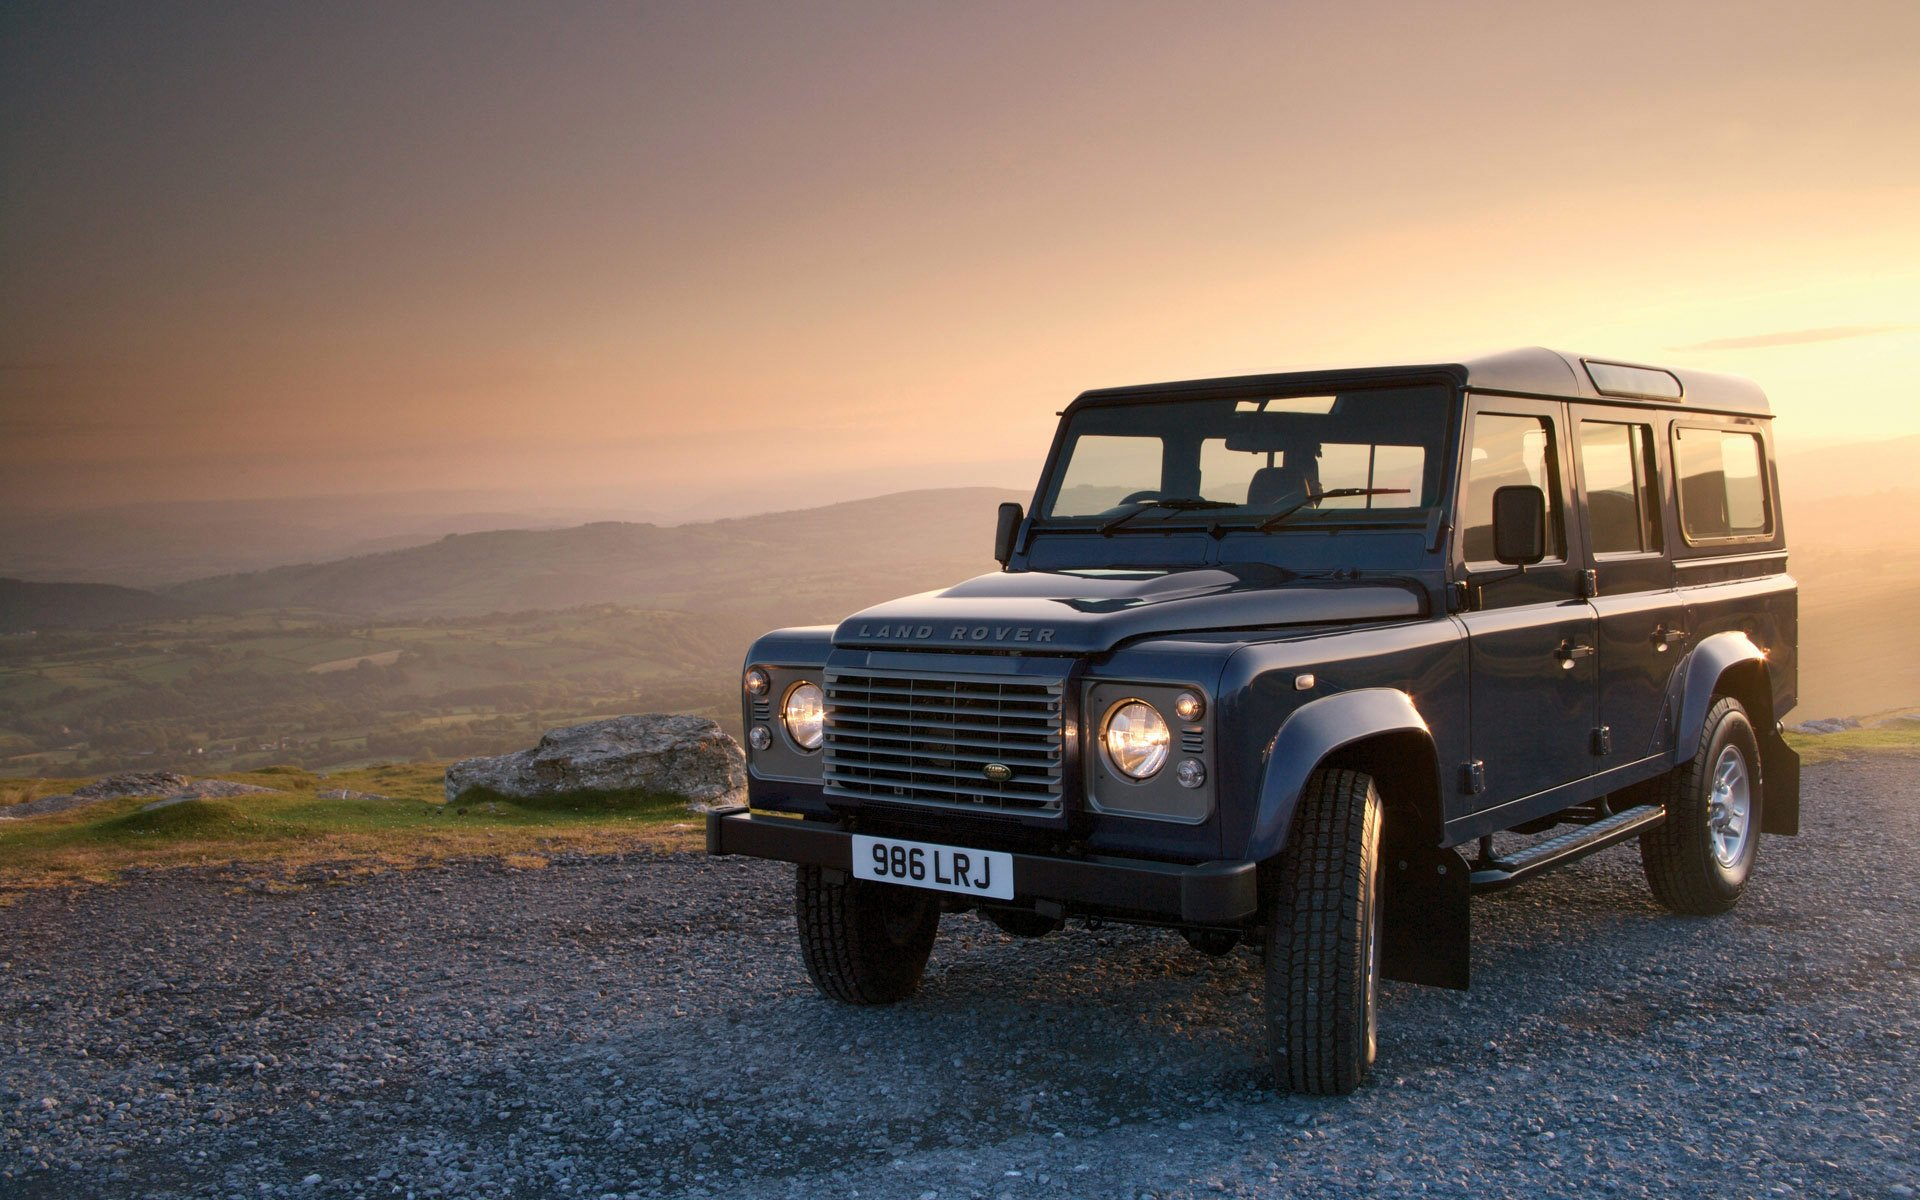 47 Land Rover Defender HD Wallpapers | Background Images - Wallpaper